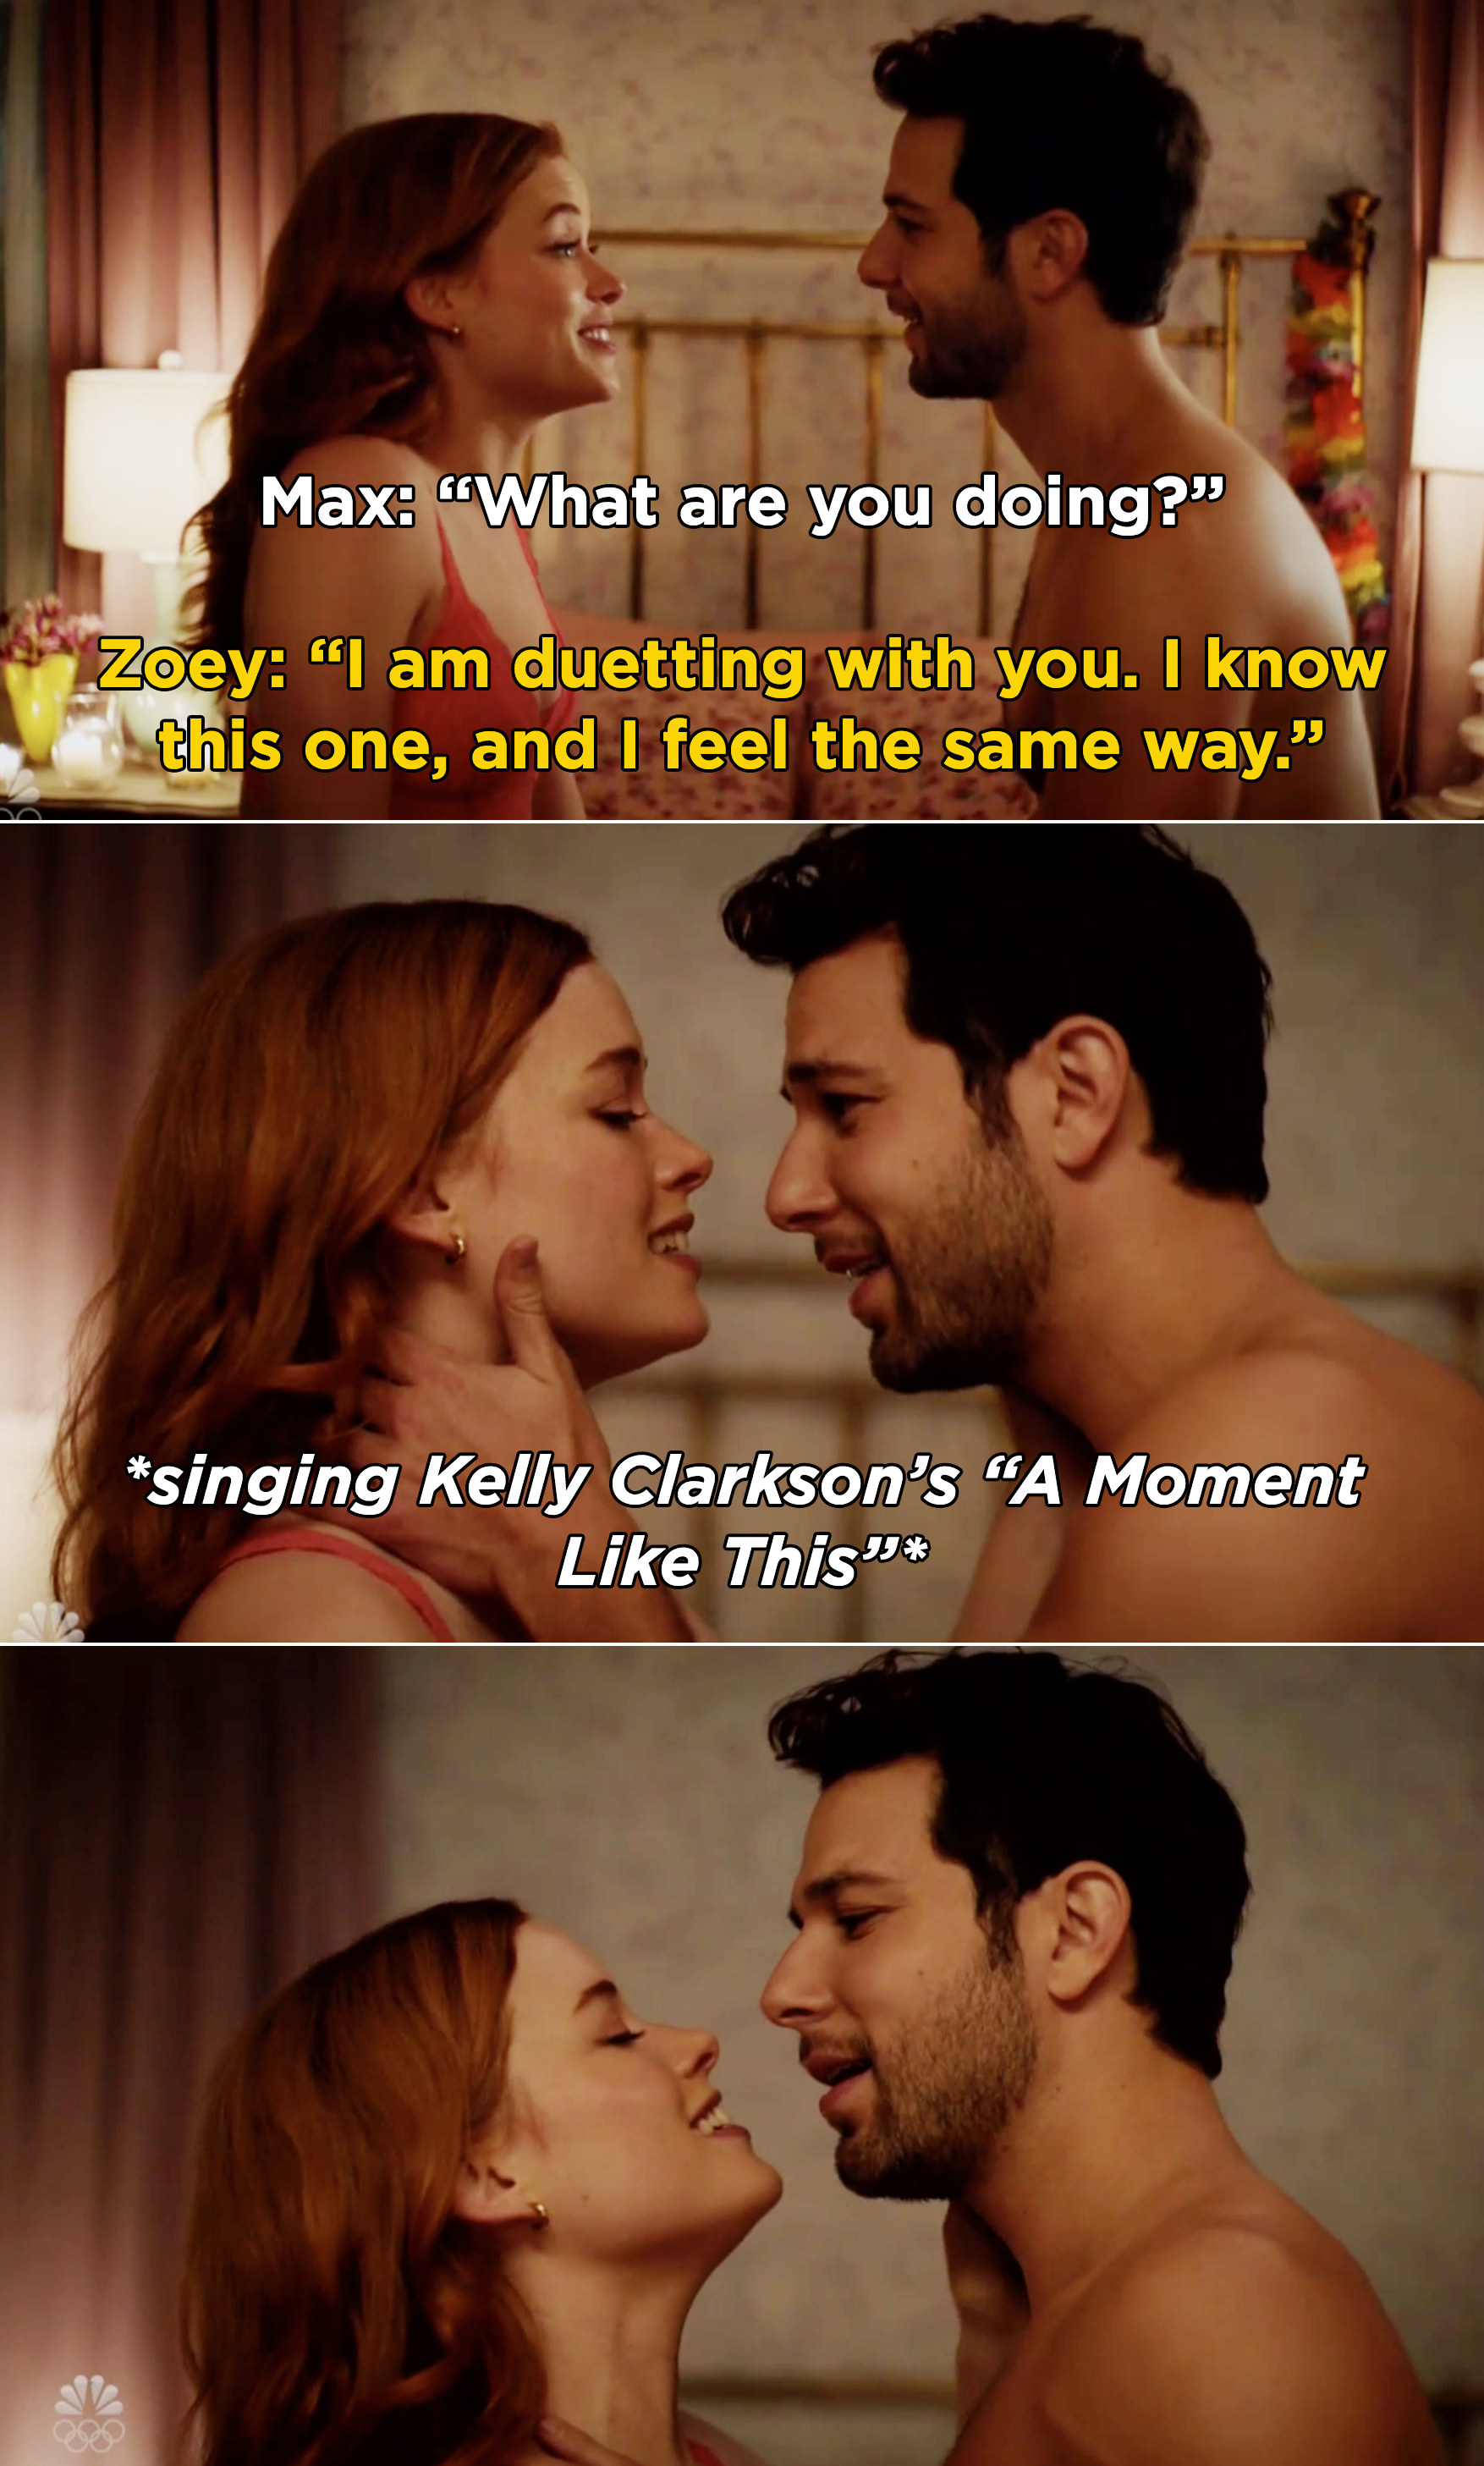 """Max and Zoey singing Kelly Clarkson's """"A Moment Like This"""" together"""